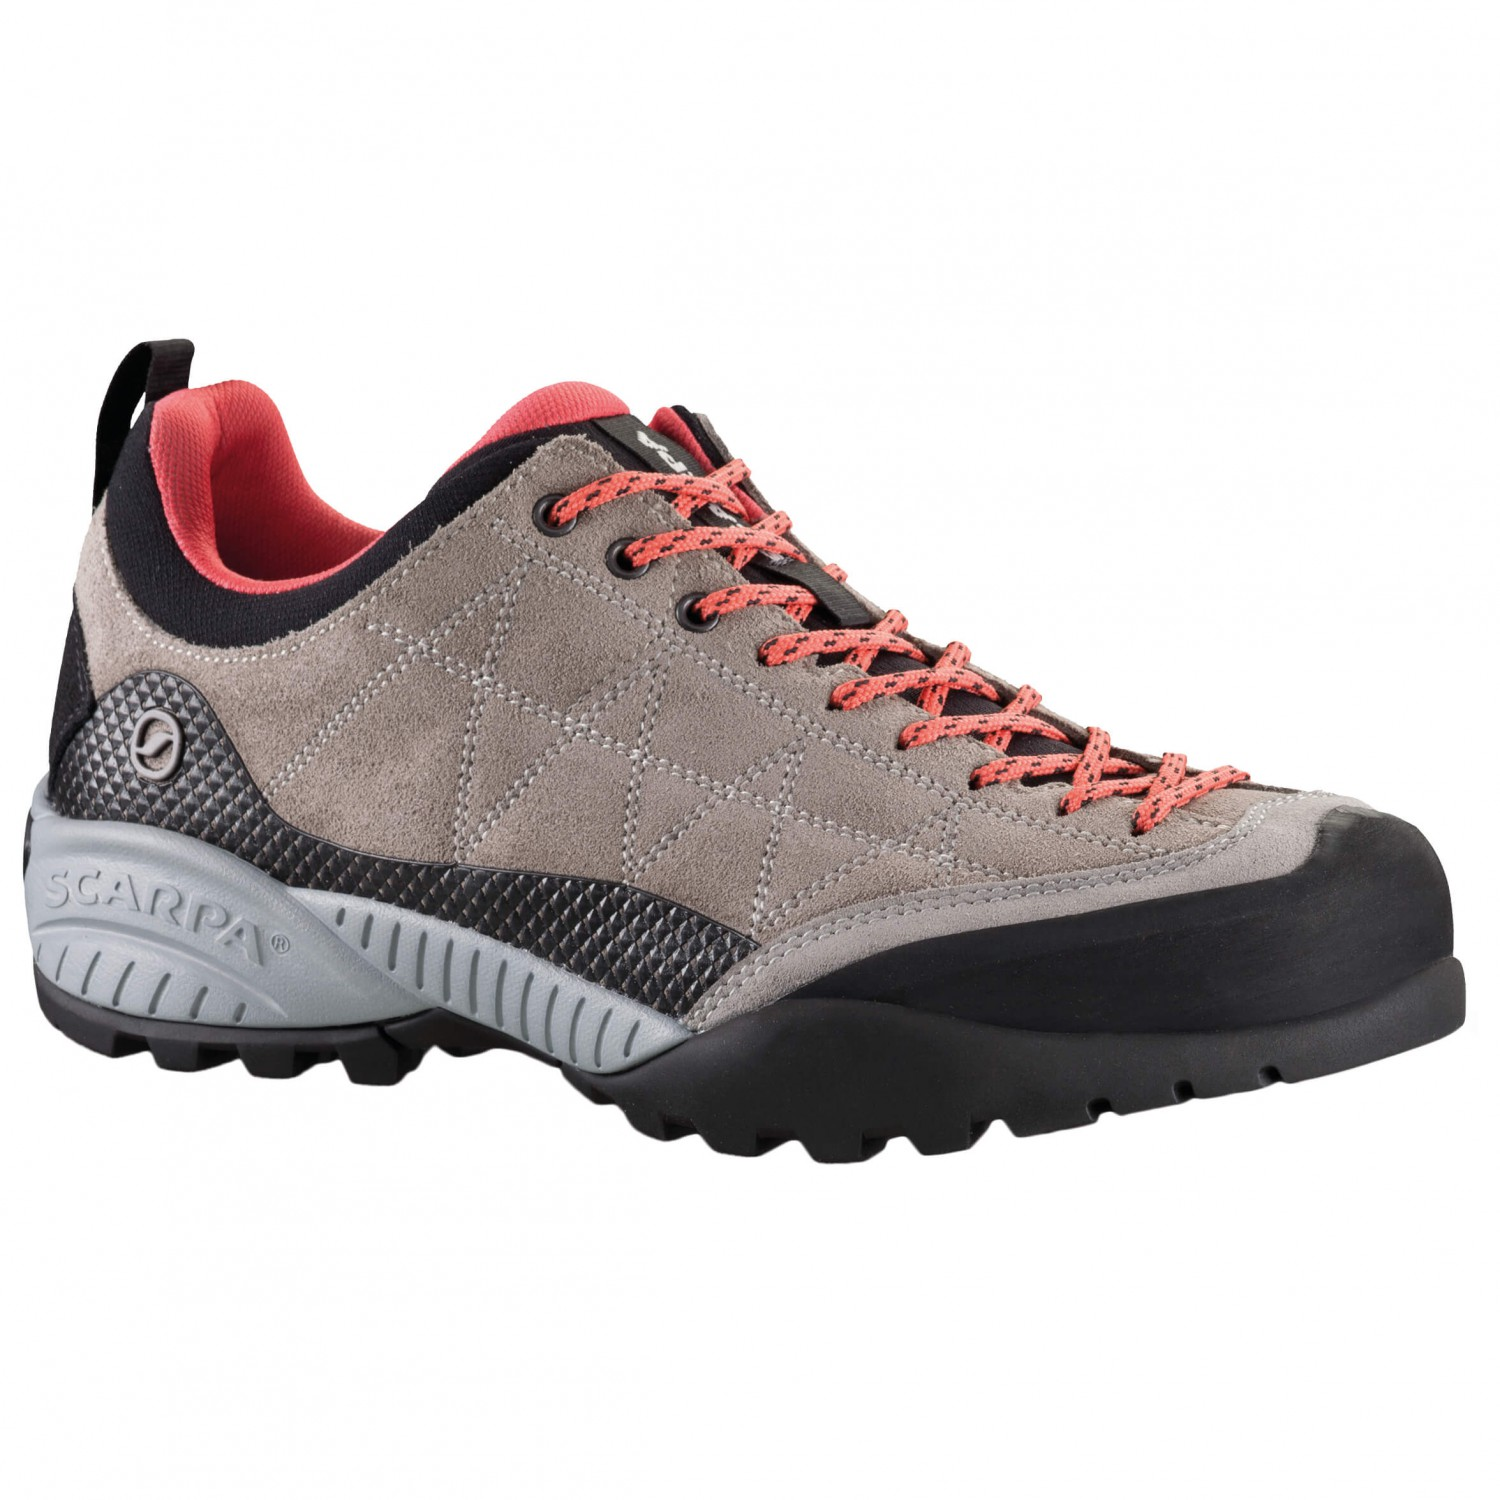 Scarpa - Women's Zen Pro - Approachschuhe Taupe / Coral Red